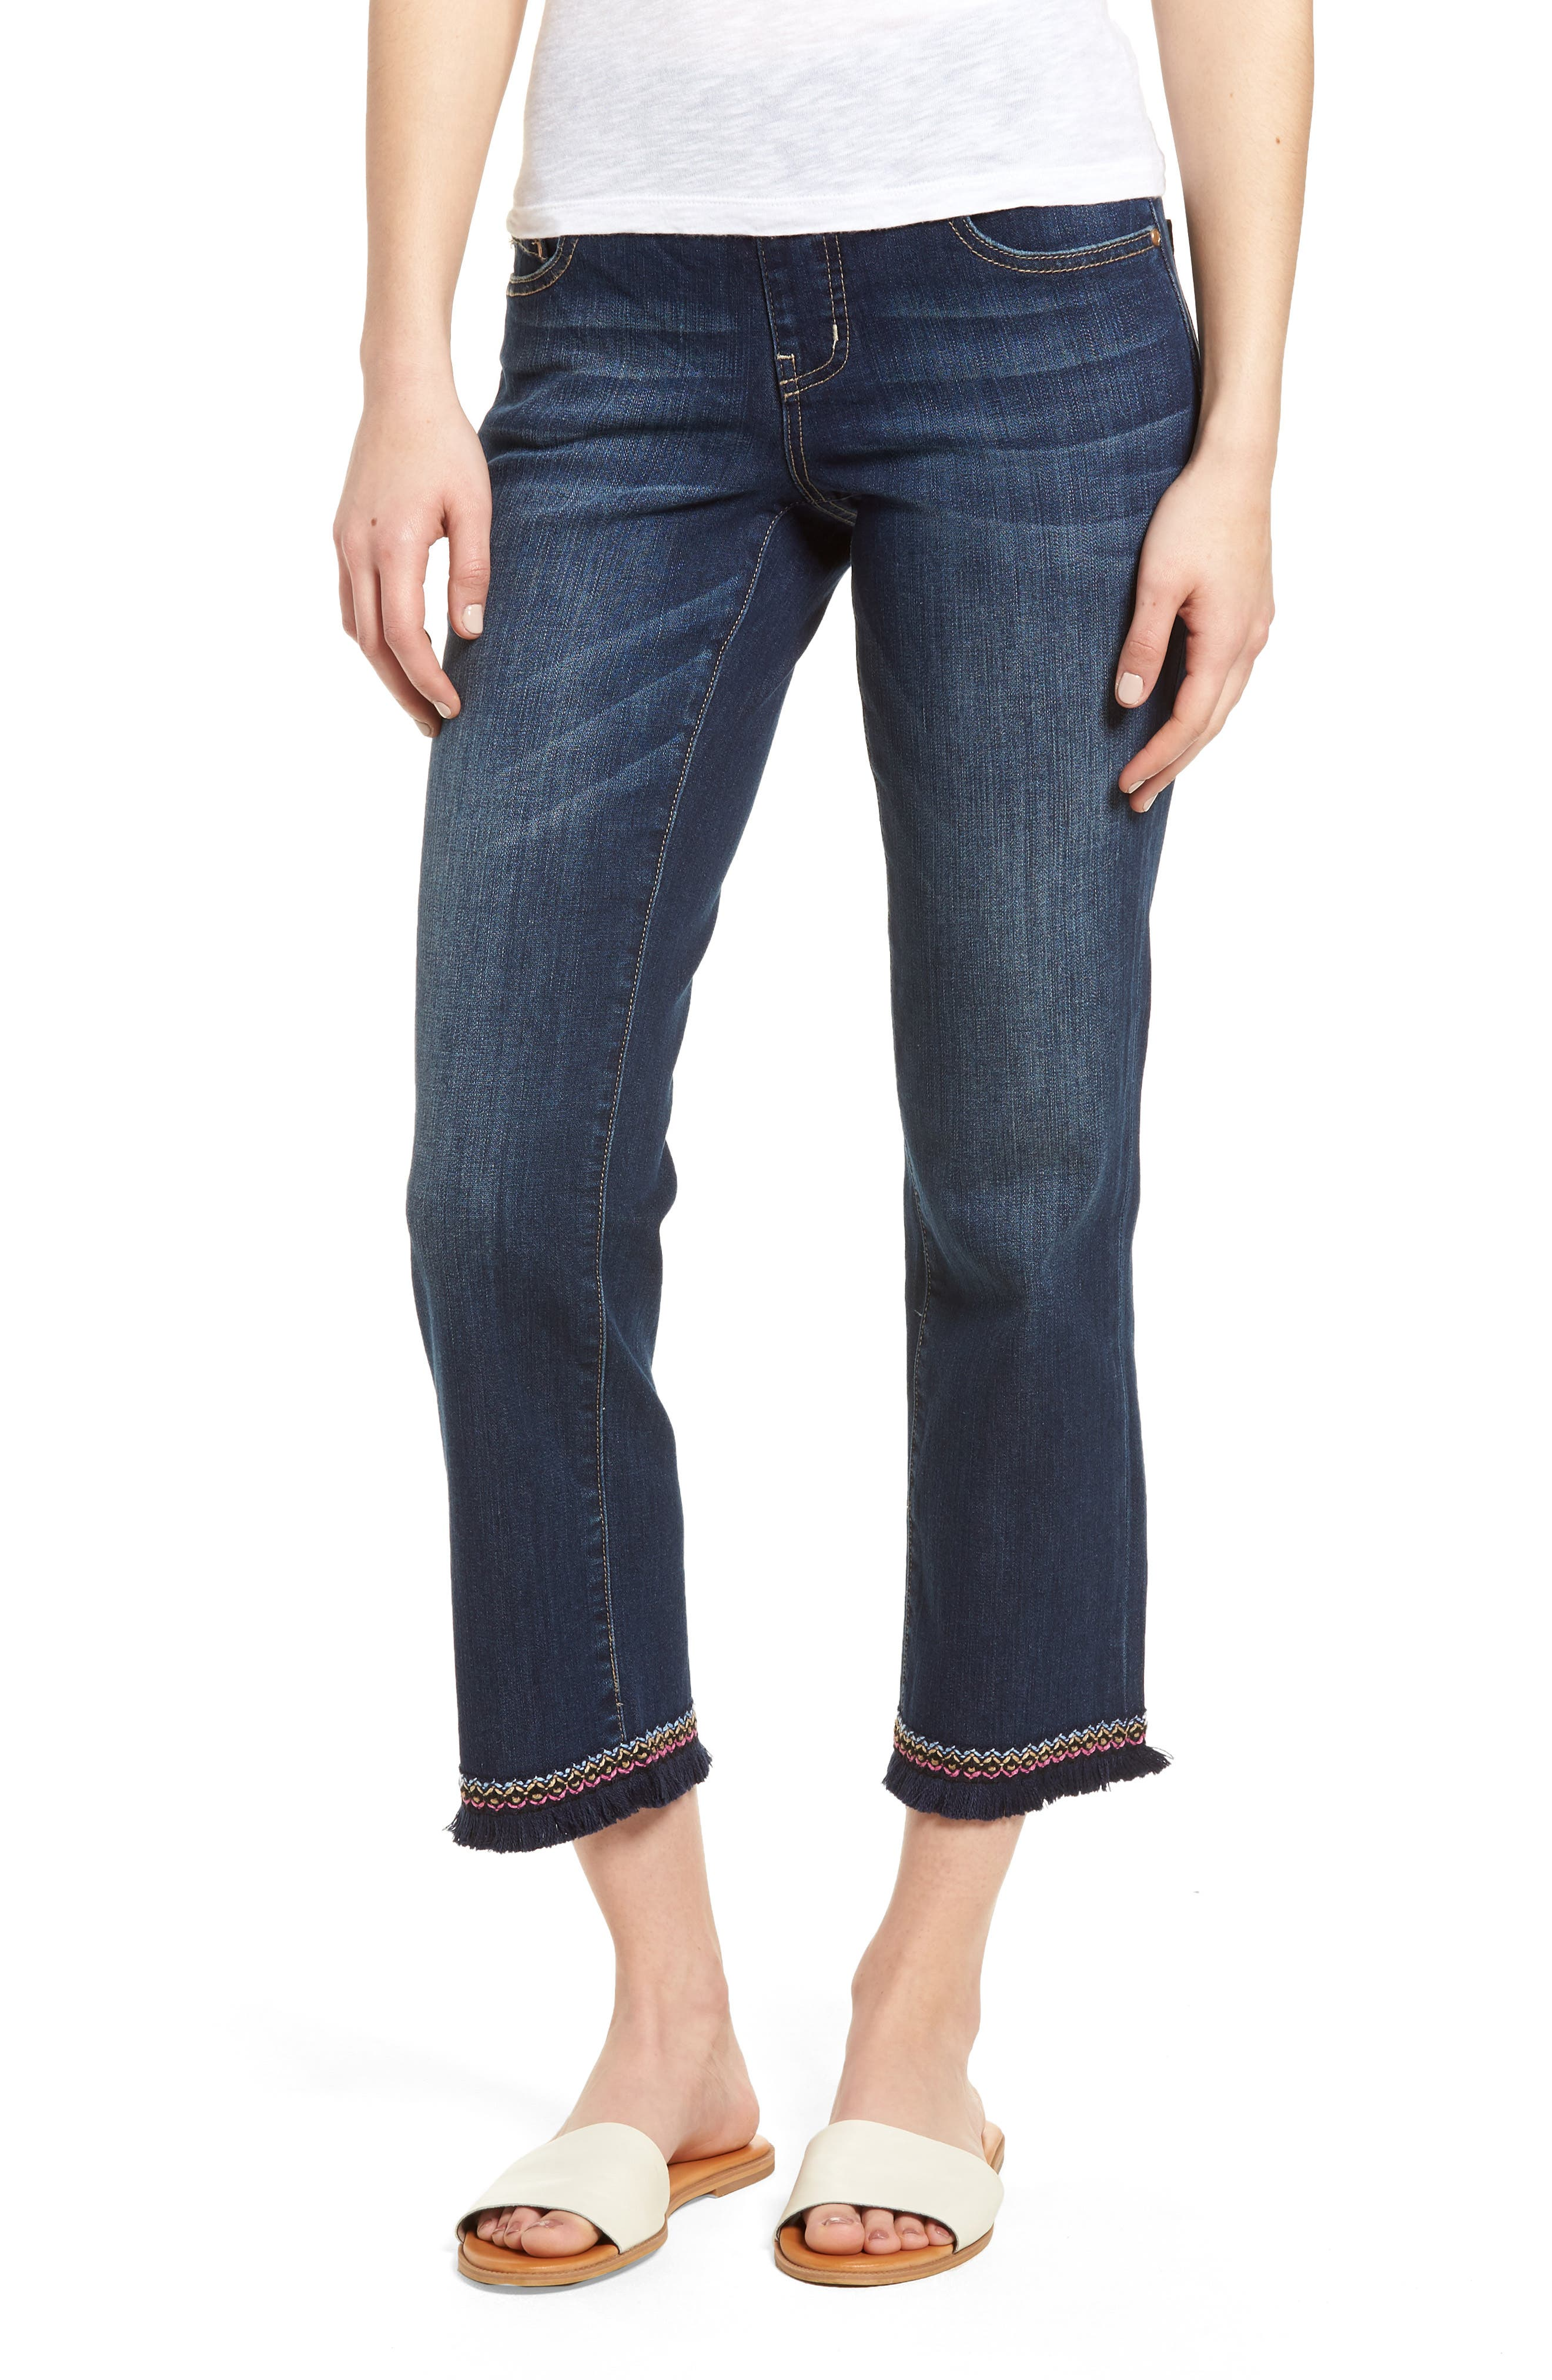 JAG JEANS PERI EMBROIDERY FRINGE JEANS